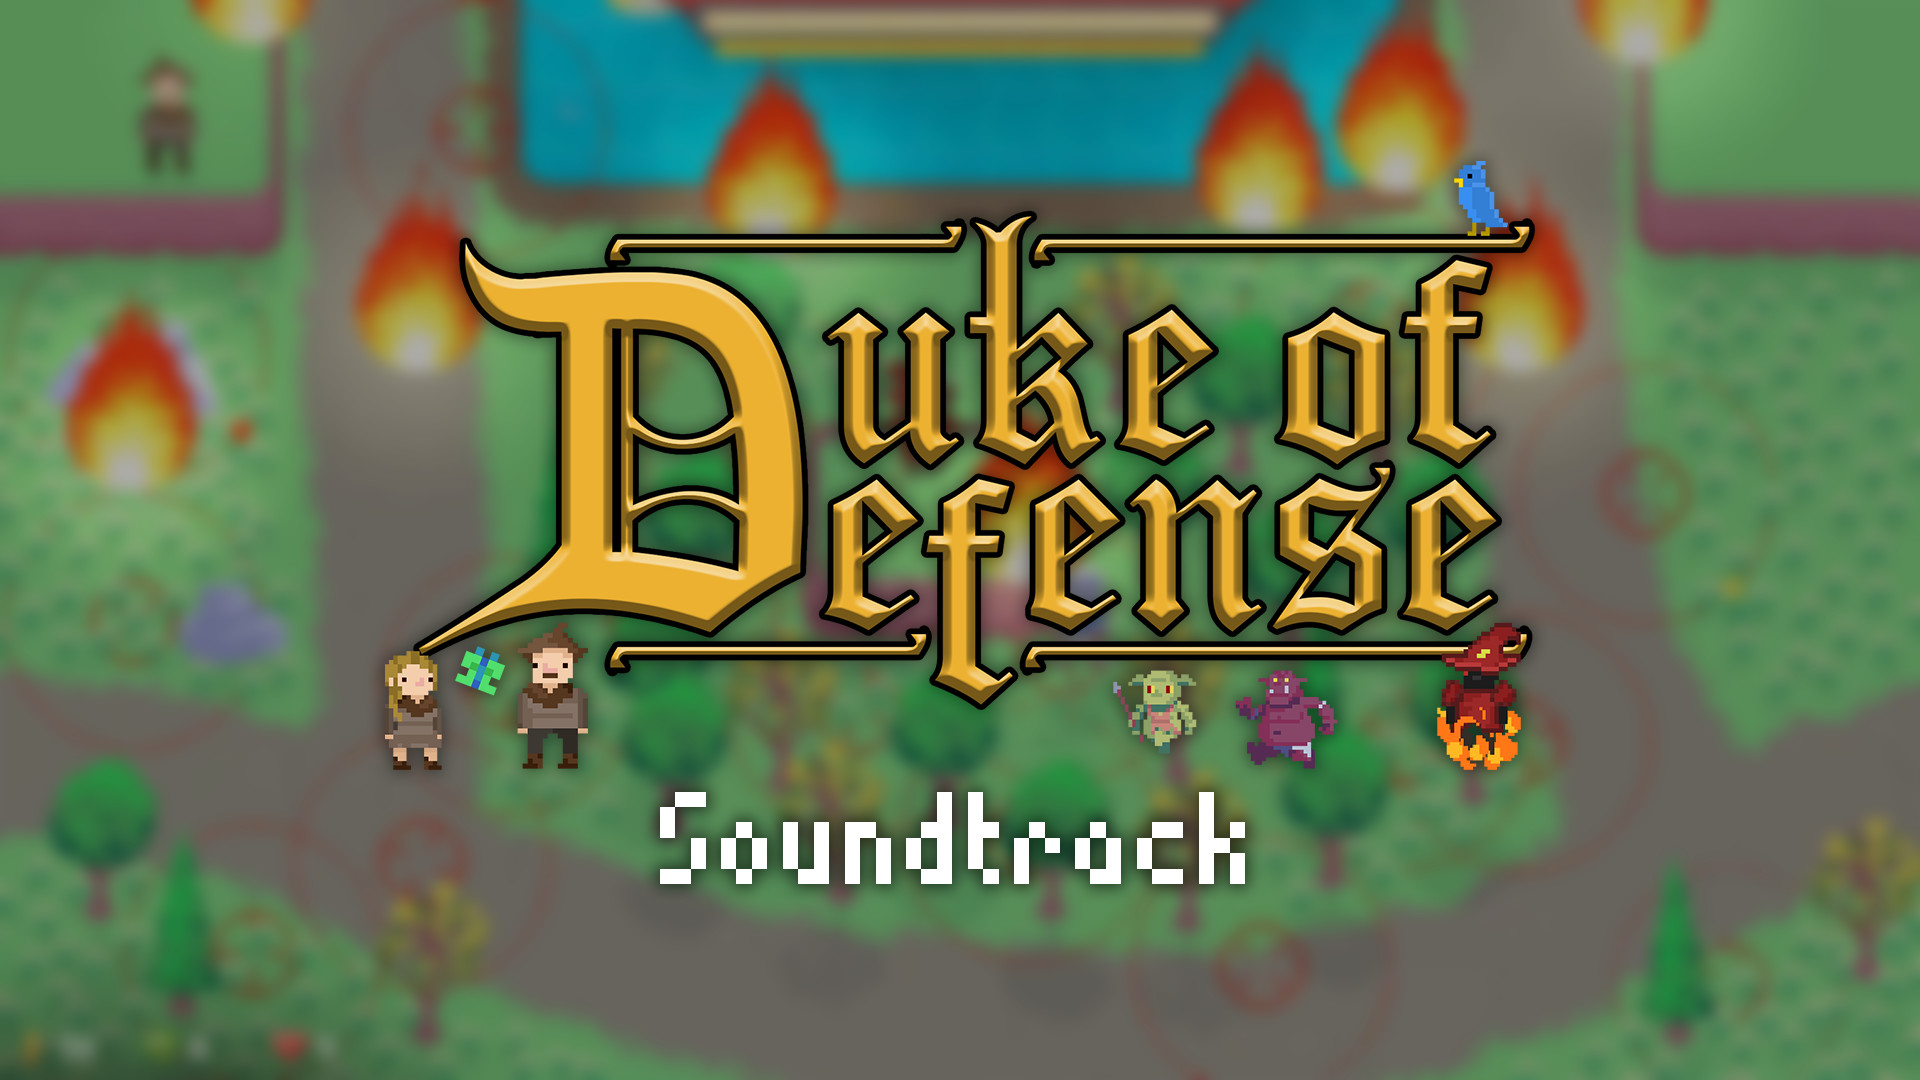 Duke of Defense - Soundtrack screenshot